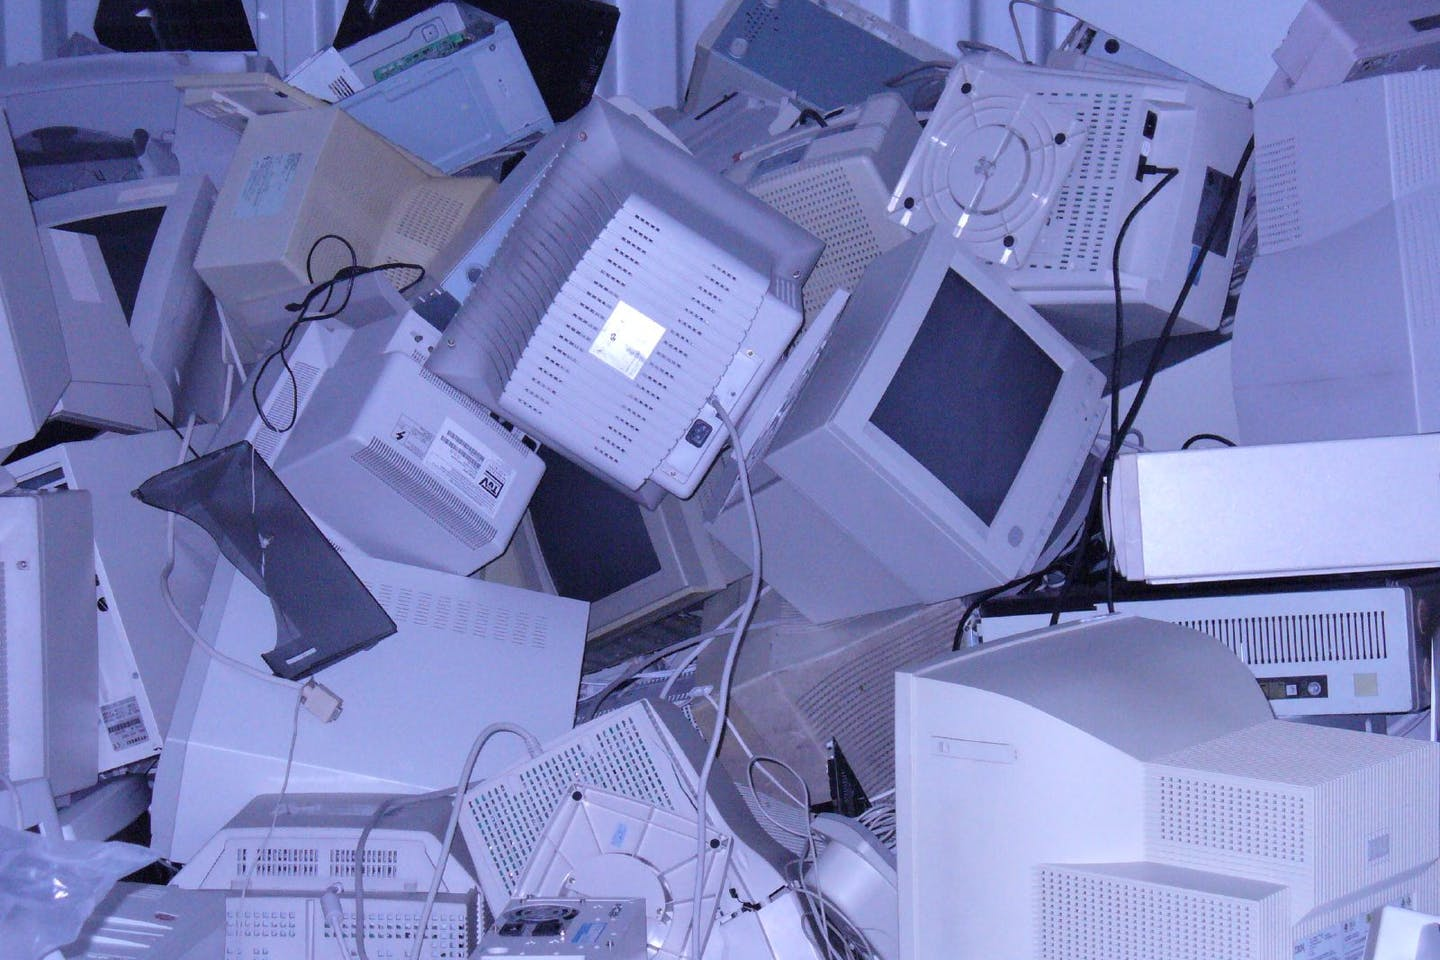 mass grave of computers